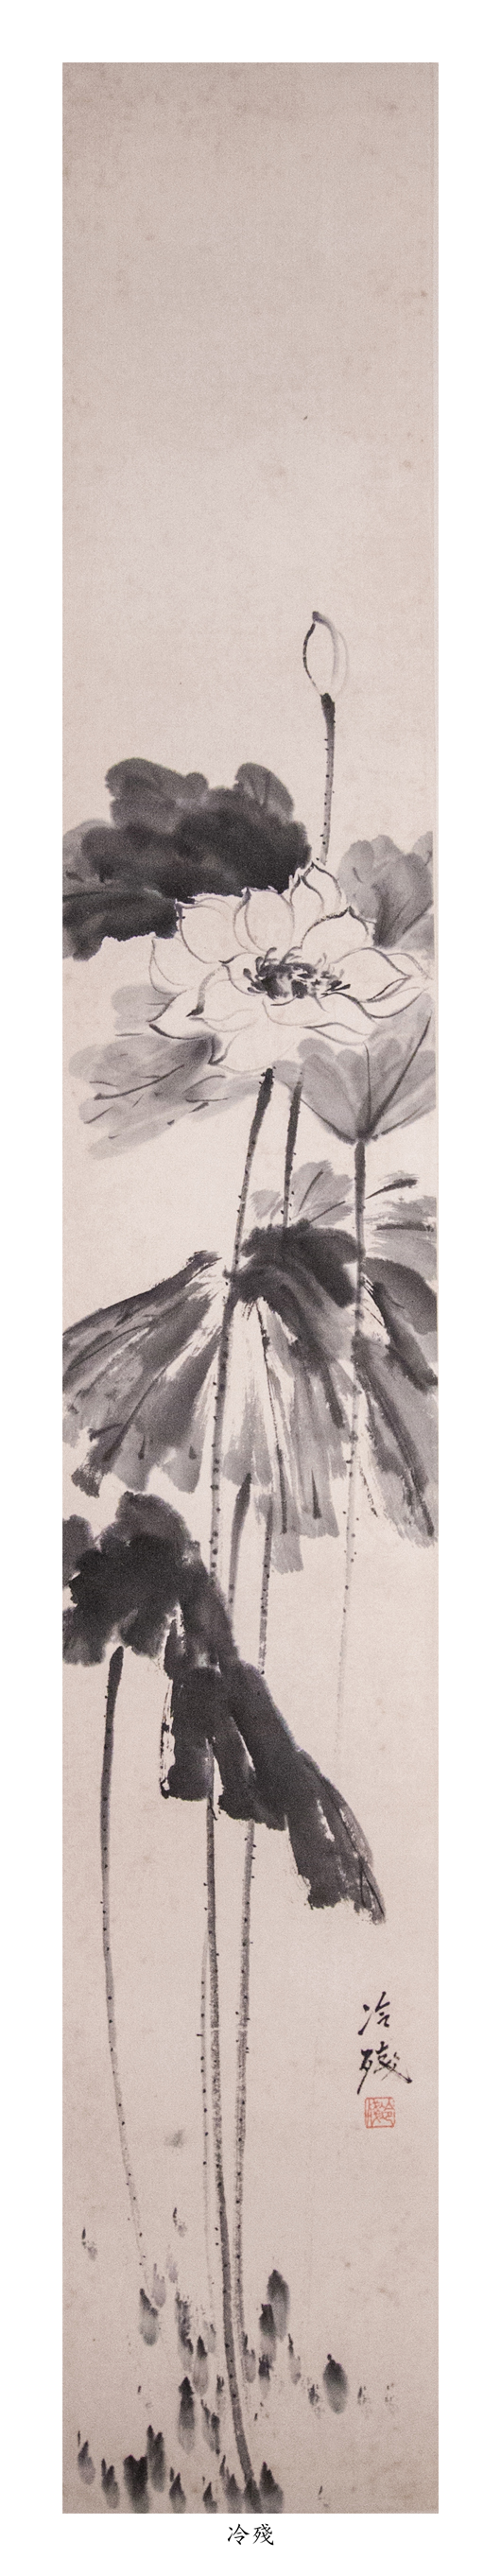 Leng Can scroll painting. Four Seasons Auctioneers image.